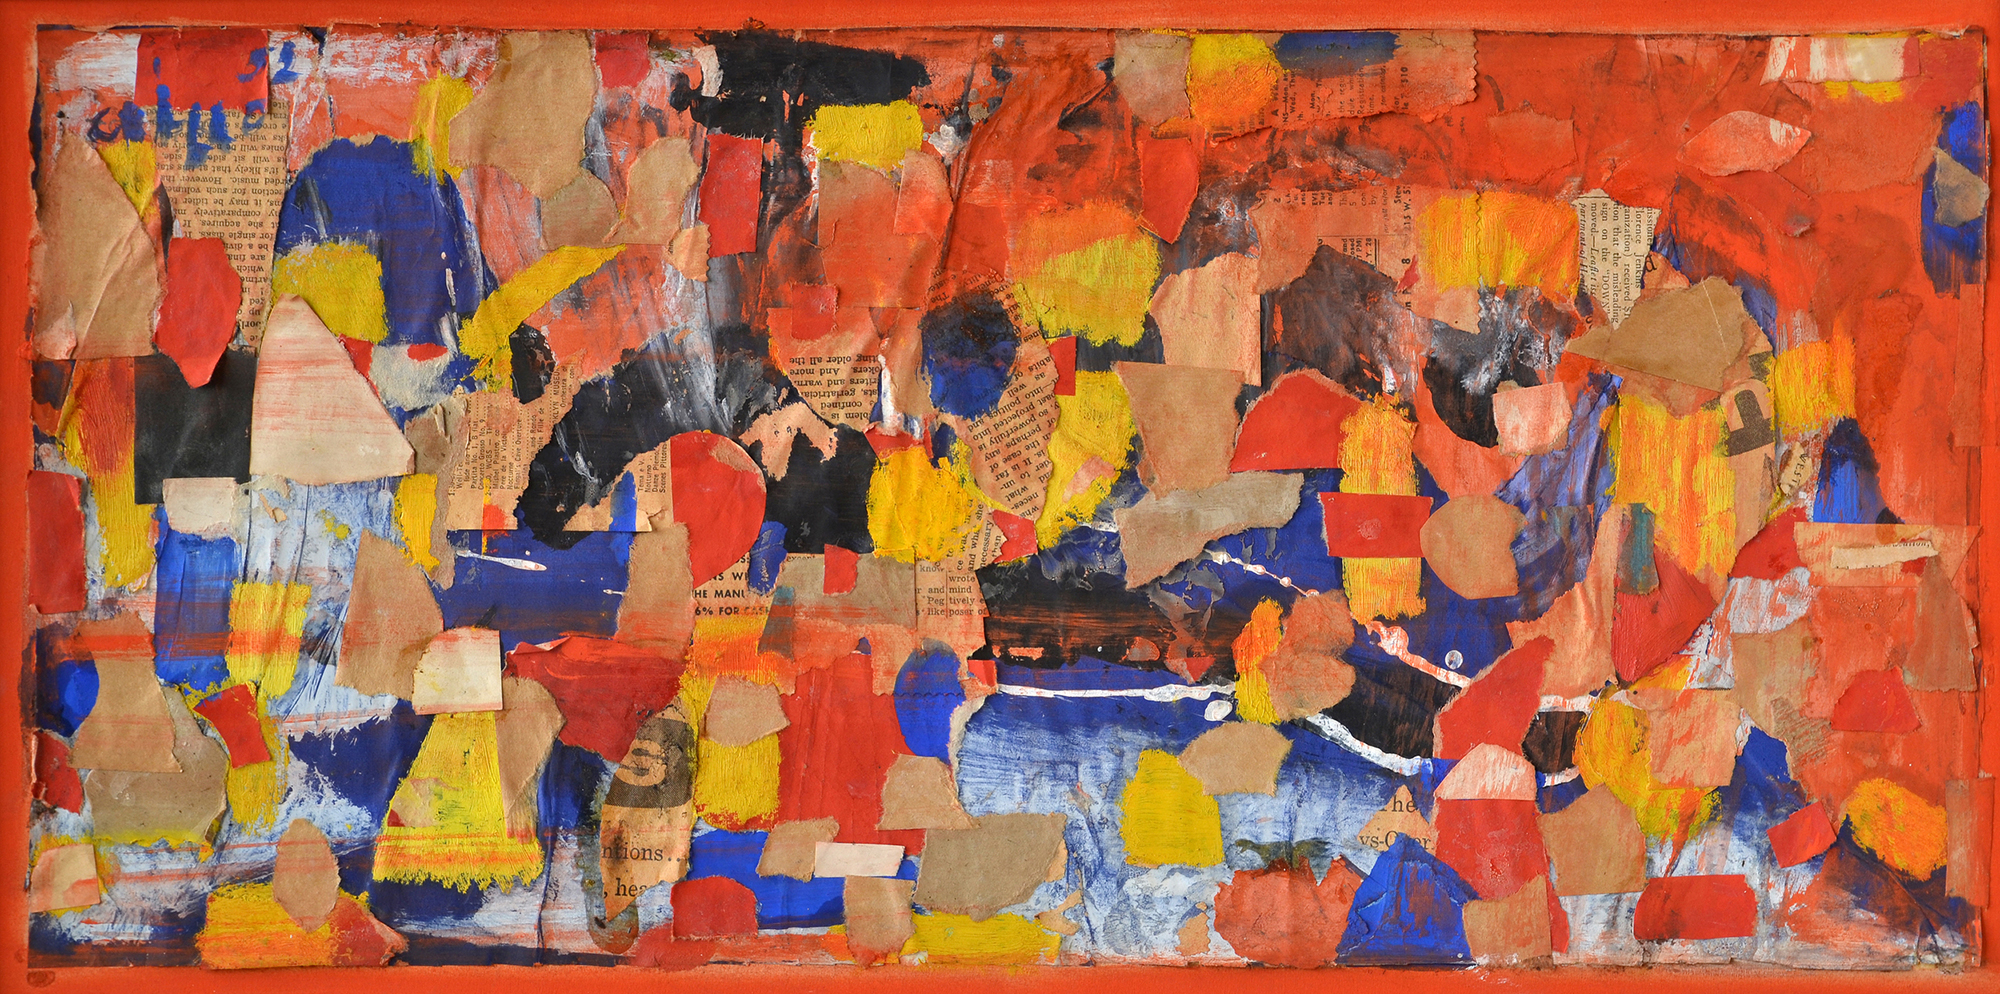 SOLD  Red Vapors, 1952  , collage on canvas, 12 x 18 inches